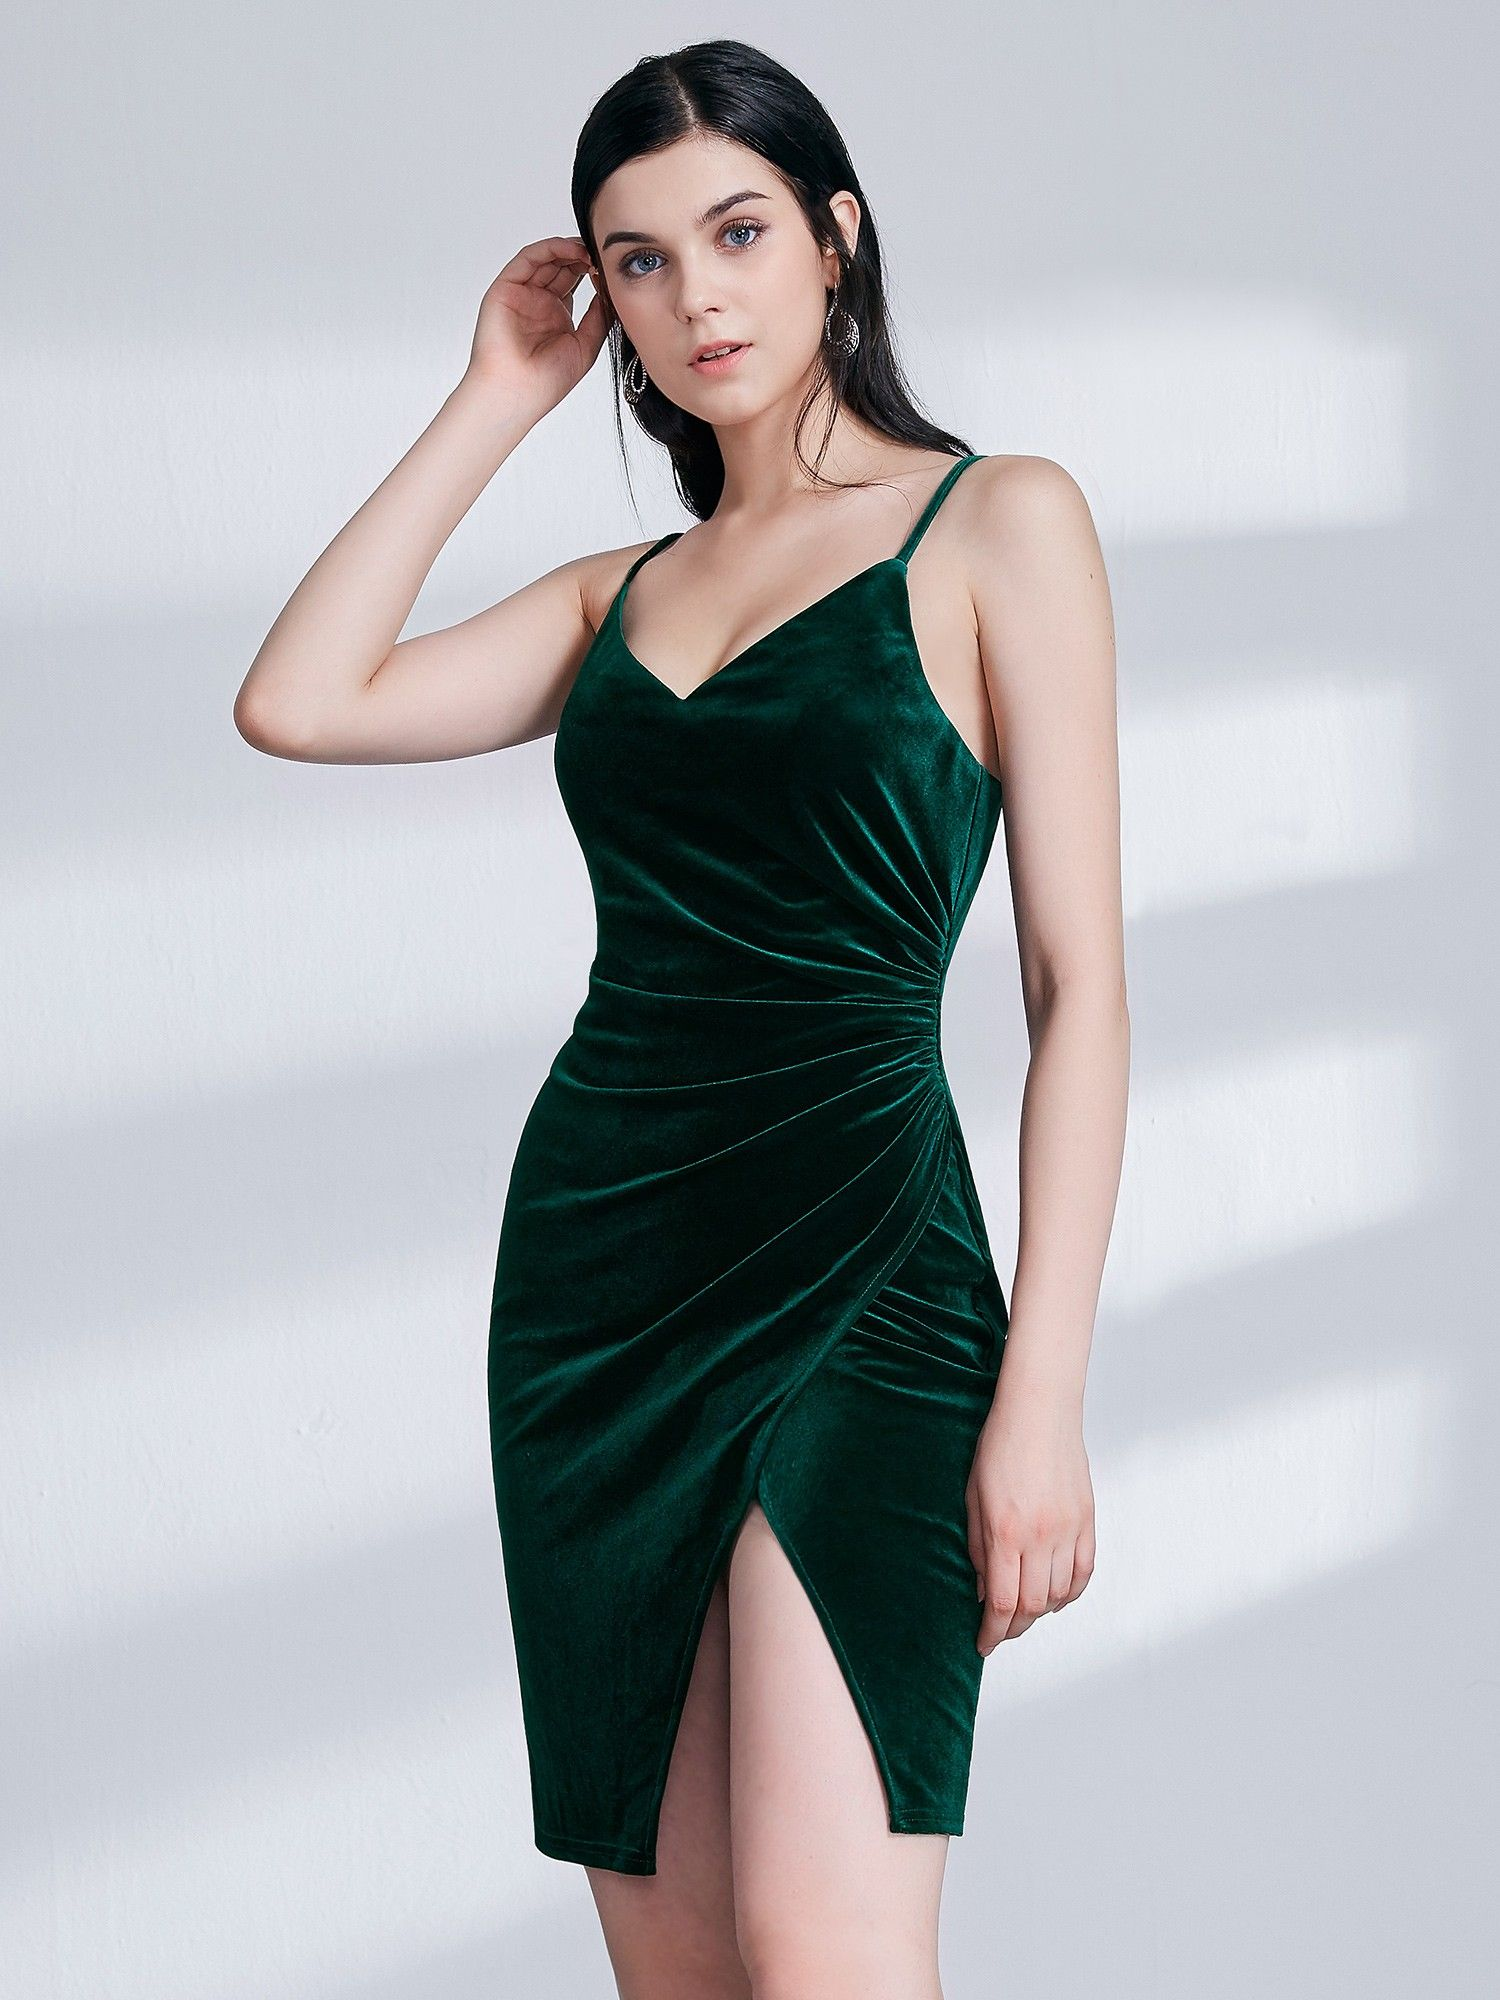 198e2170695e Sexy Fitted Green Velvet Cocktail Dress | Ever-Pretty #partydress  #partydresses #shortdress #velvetdress #EverPretty #greendress